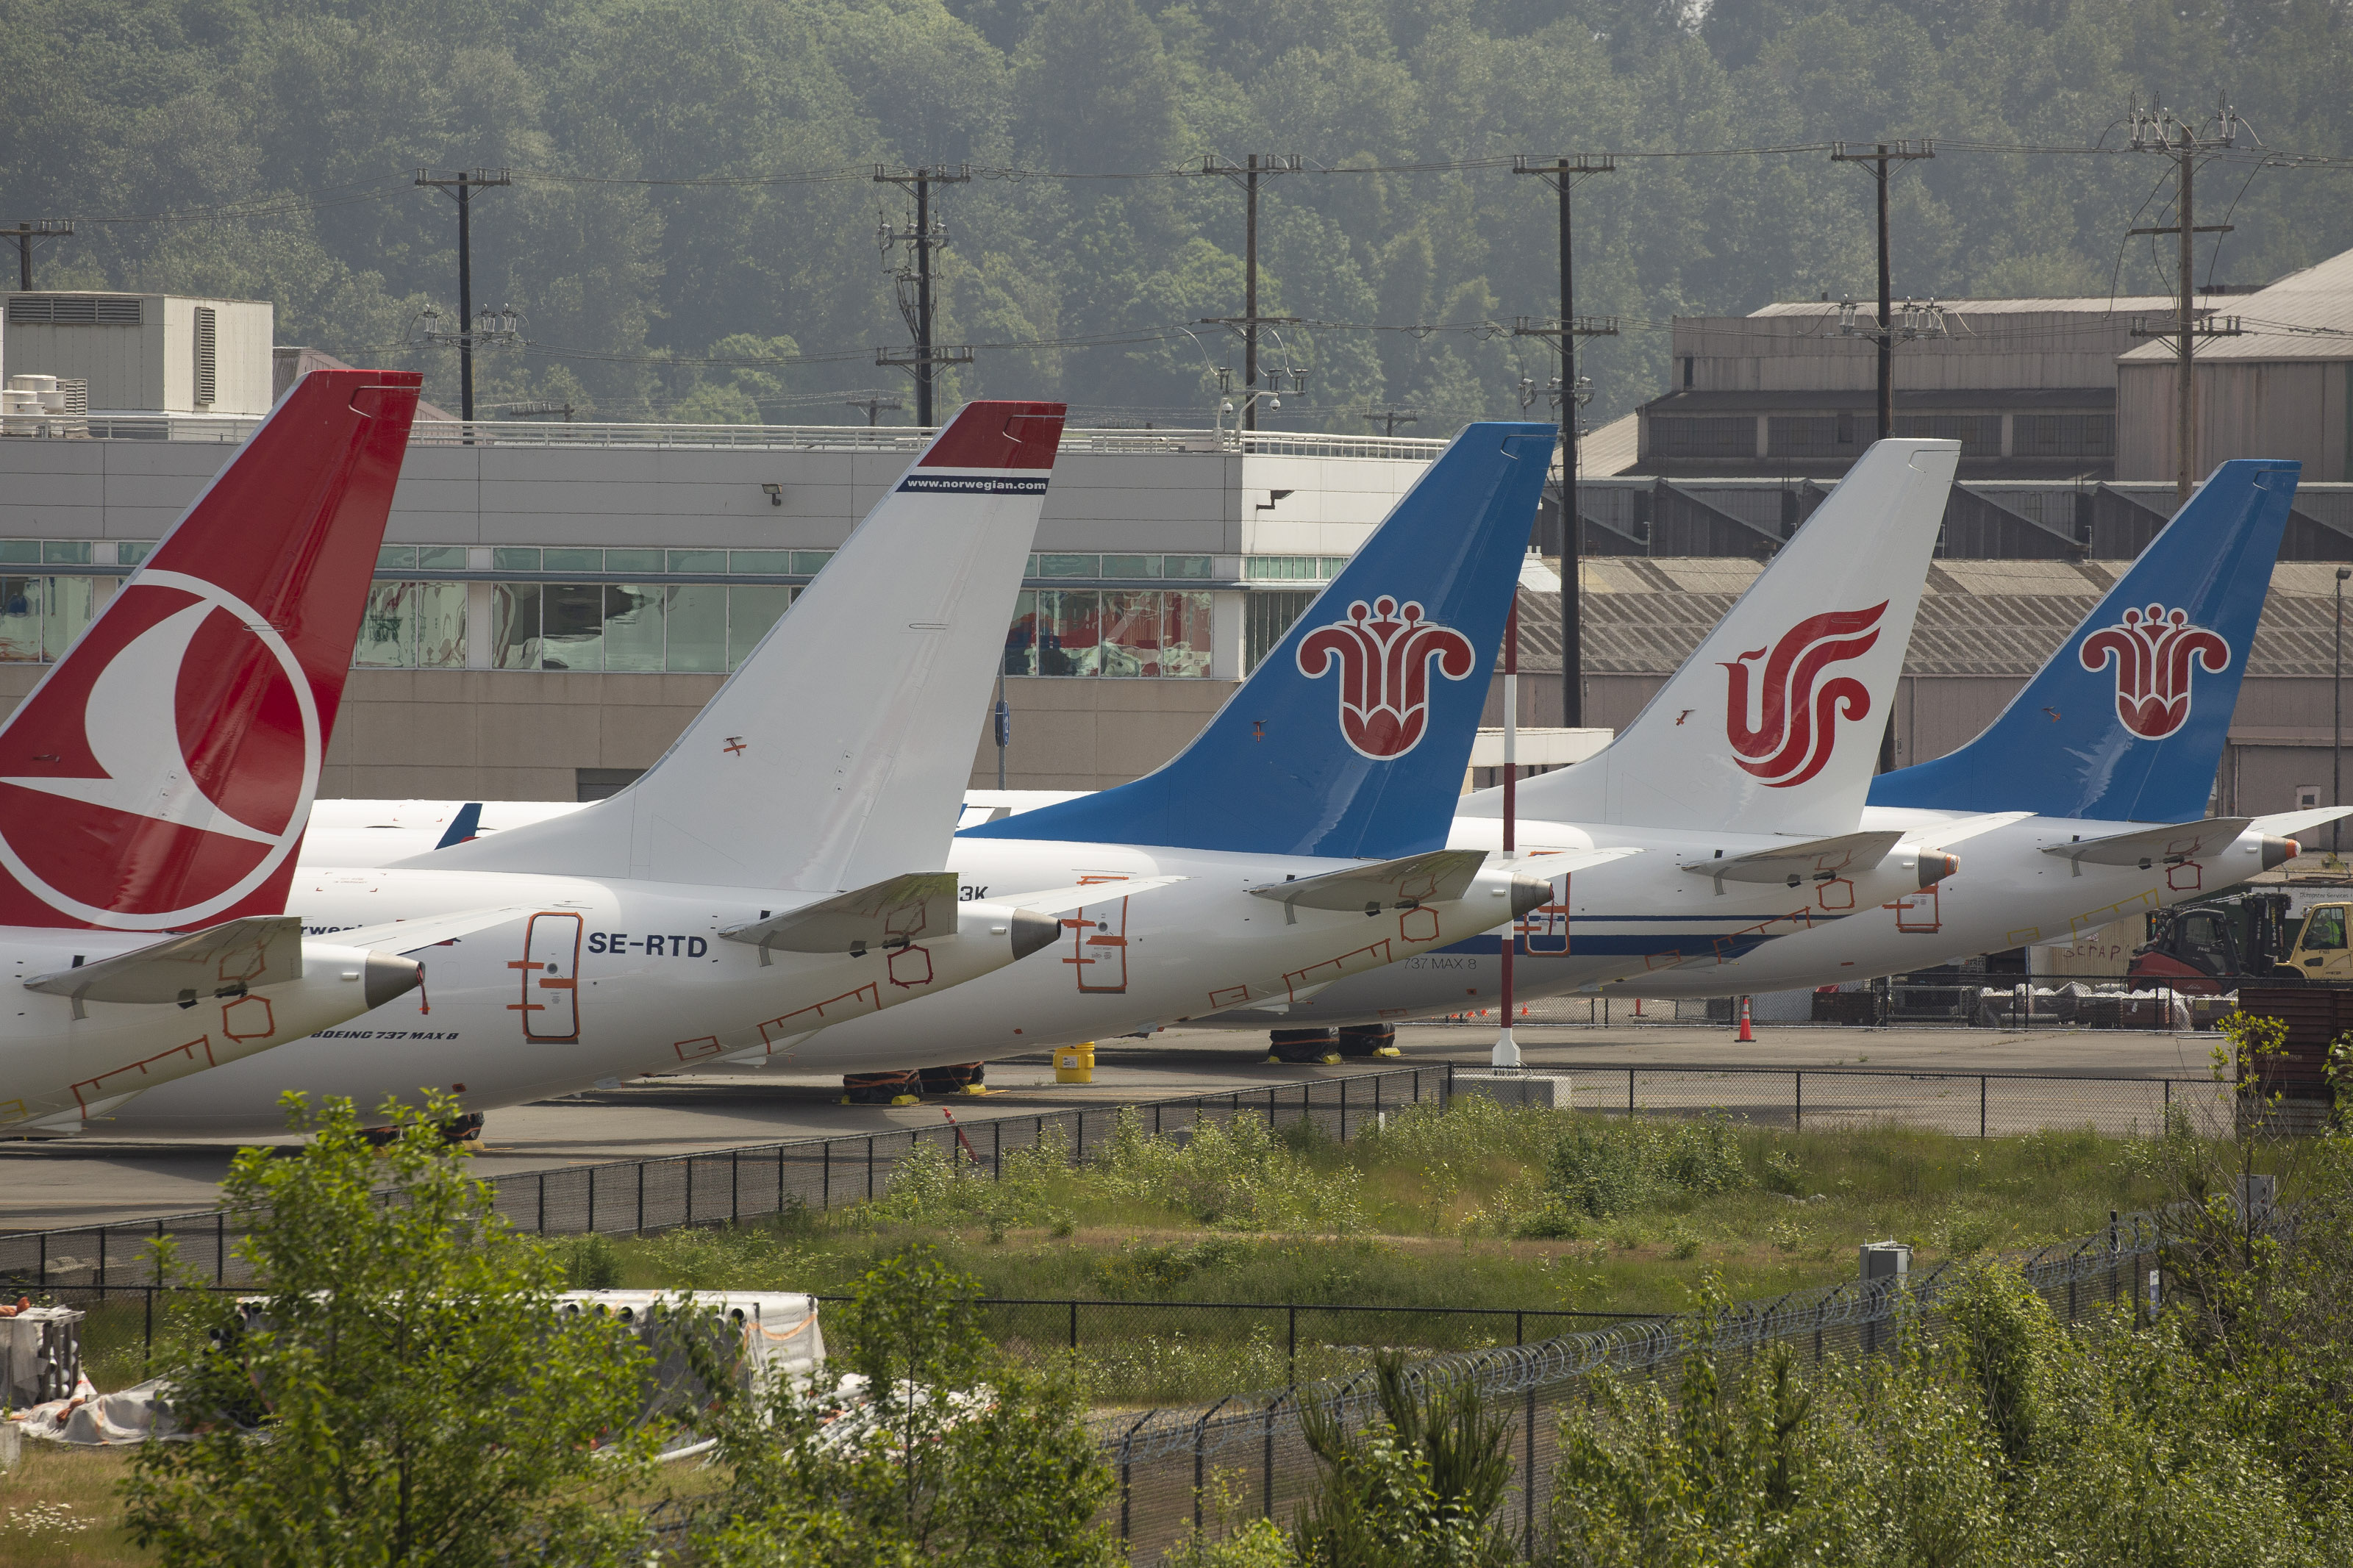 SEATTLE, WA - MAY 31: The tails of Boeing 737 MAX airplanes are seen as they sit parked at a Boeing facility adjacent to King County International Airport, known as Boeing Field, on May 31, 2019 in Seattle, Washington. Boeing 737 MAX airplanes have been grounded following two fatal crashes in which 346 passengers and crew were killed in October 2018 and March 2019. (Photo by David Ryder/Getty Images)